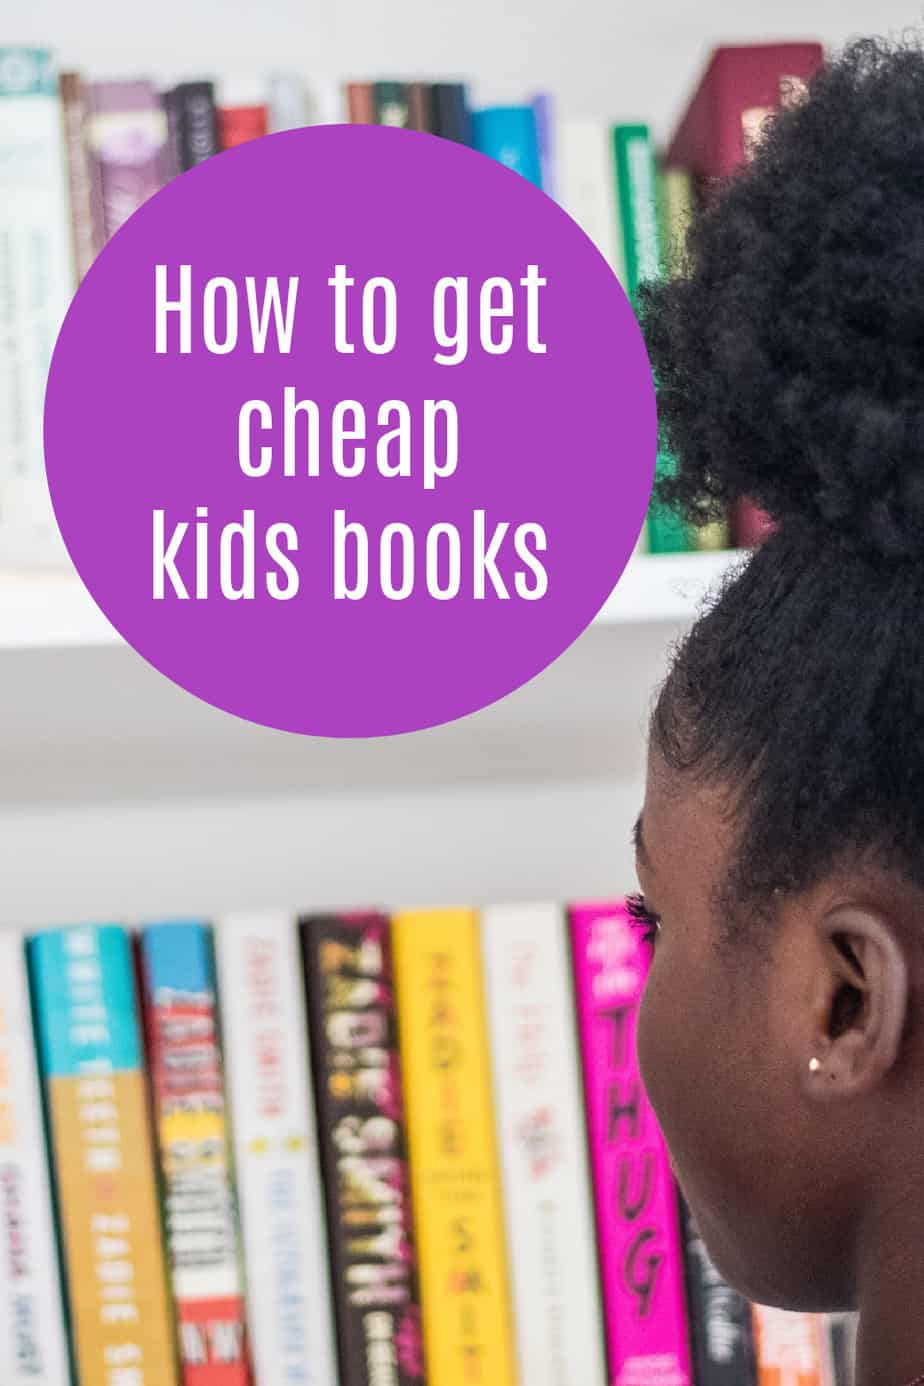 How to Get Cheap Kids Books